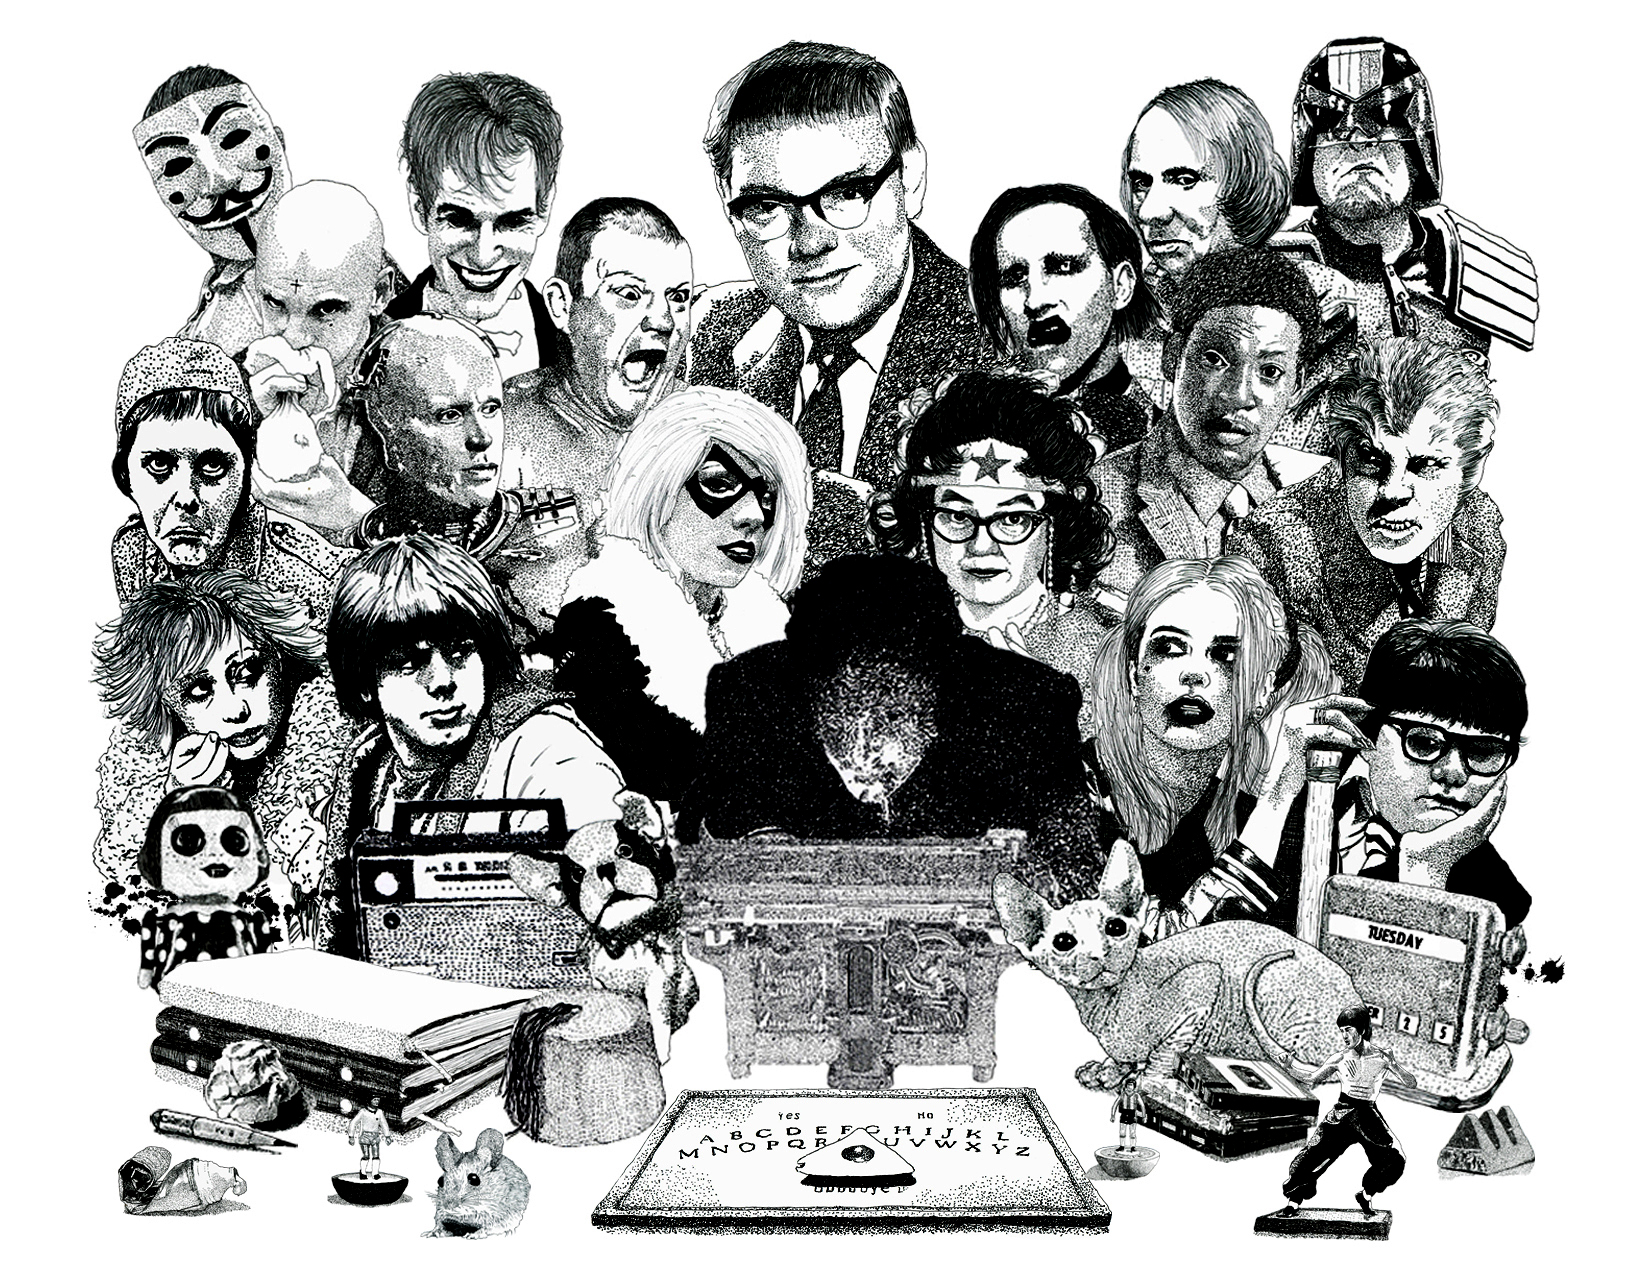 Psychic Investigator Hamilton Coe surrounded by allies and adversaries. Featured characters include Jilted John, Robocop, Erkan Mustafa as Roland Browning, Roots Manuva, Michel Houellebecq, Marilyn Manson, Genesis P Orridge